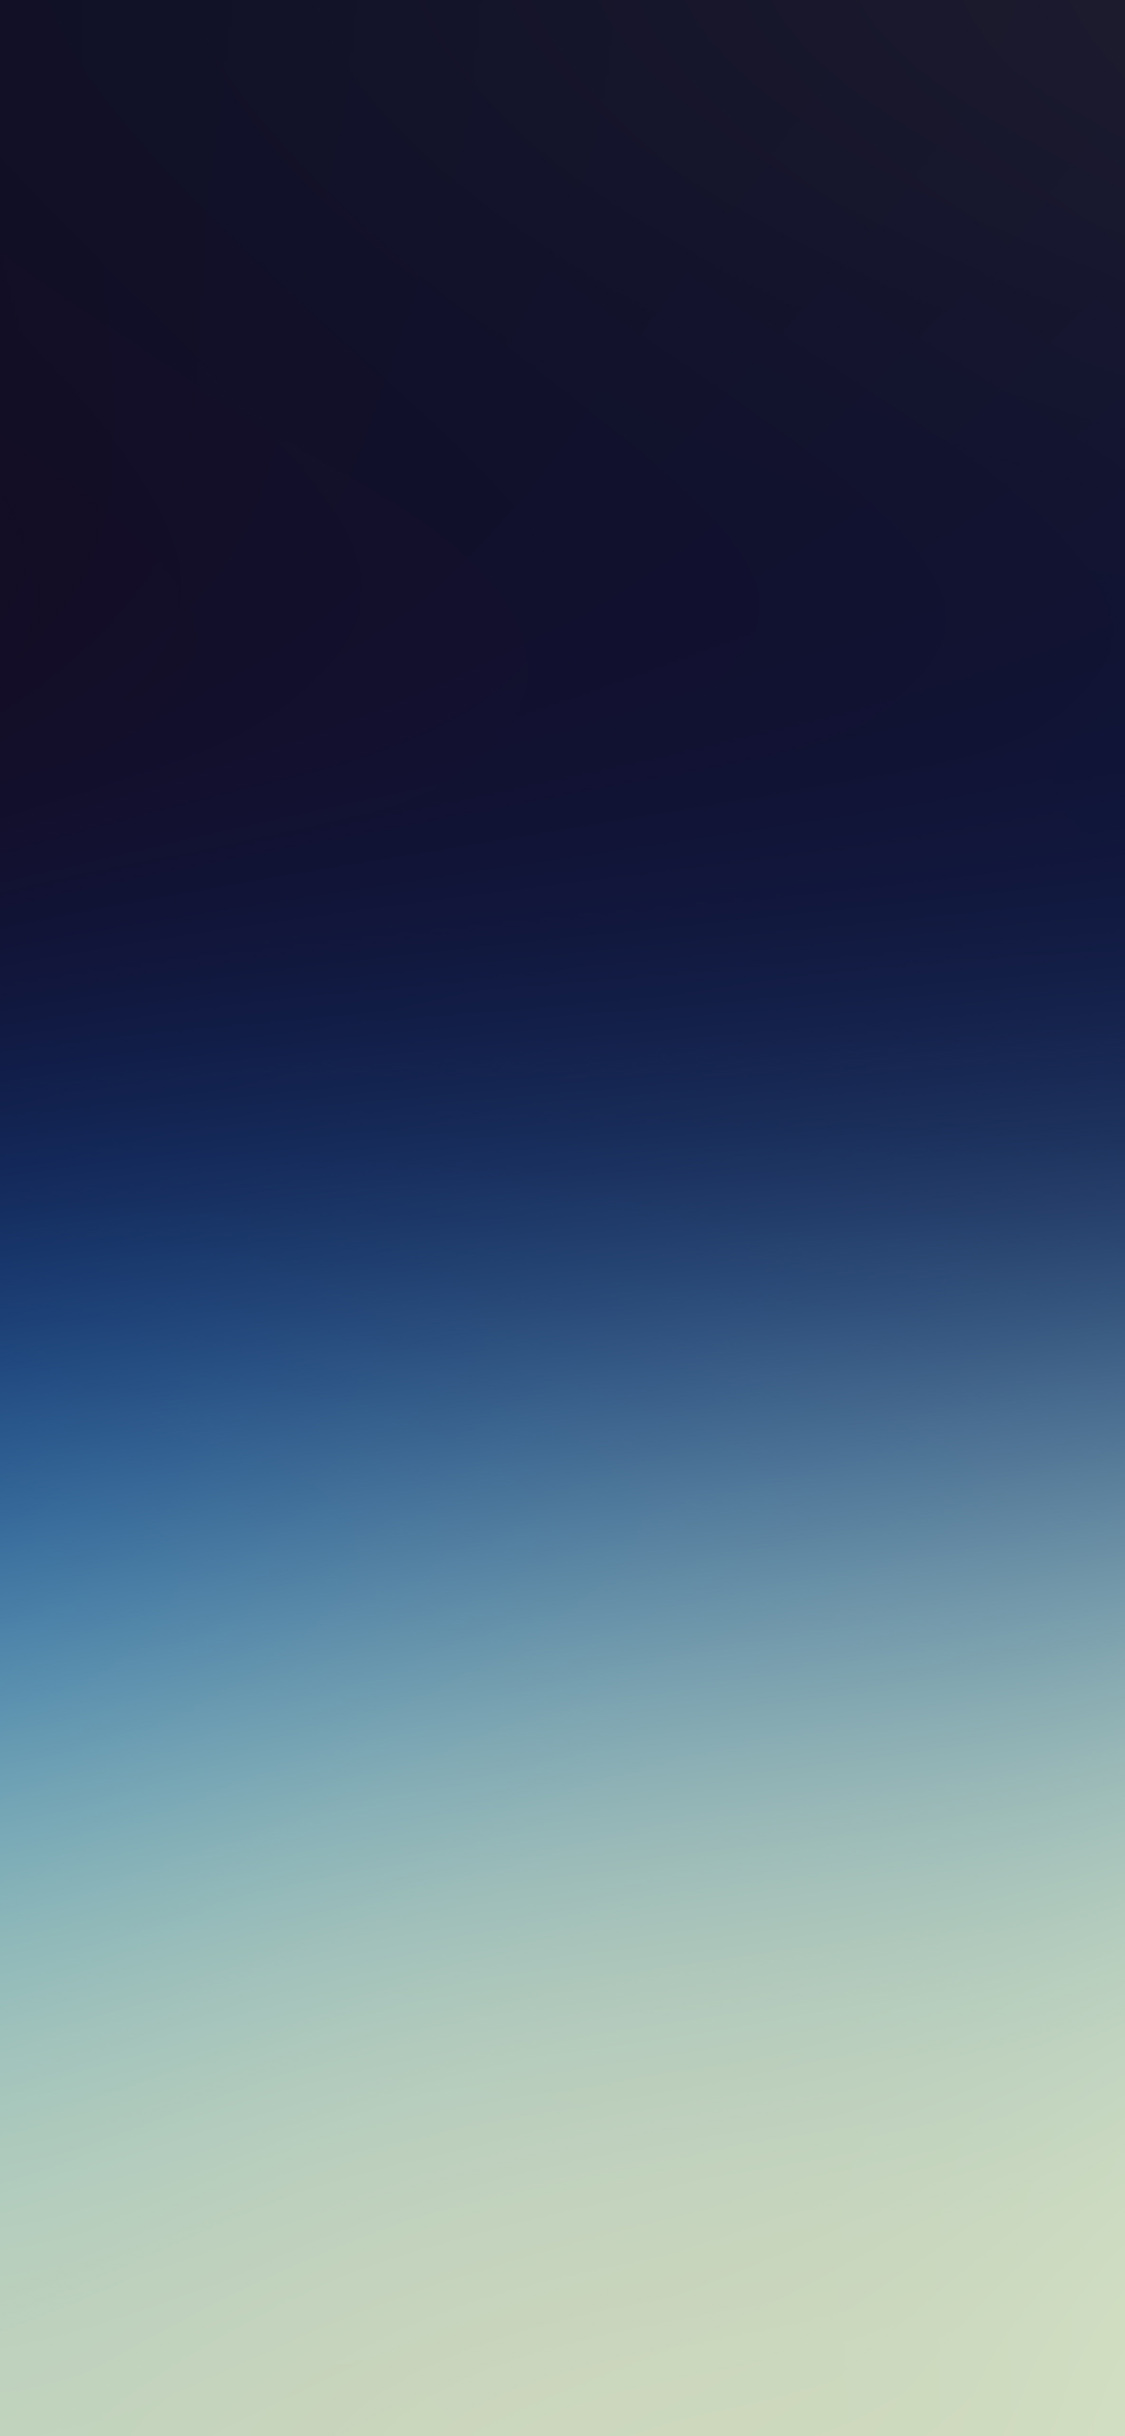 iPhoneXpapers.com-Apple-iPhone-wallpaper-sf52-blue-earth-soft-gradation-blur